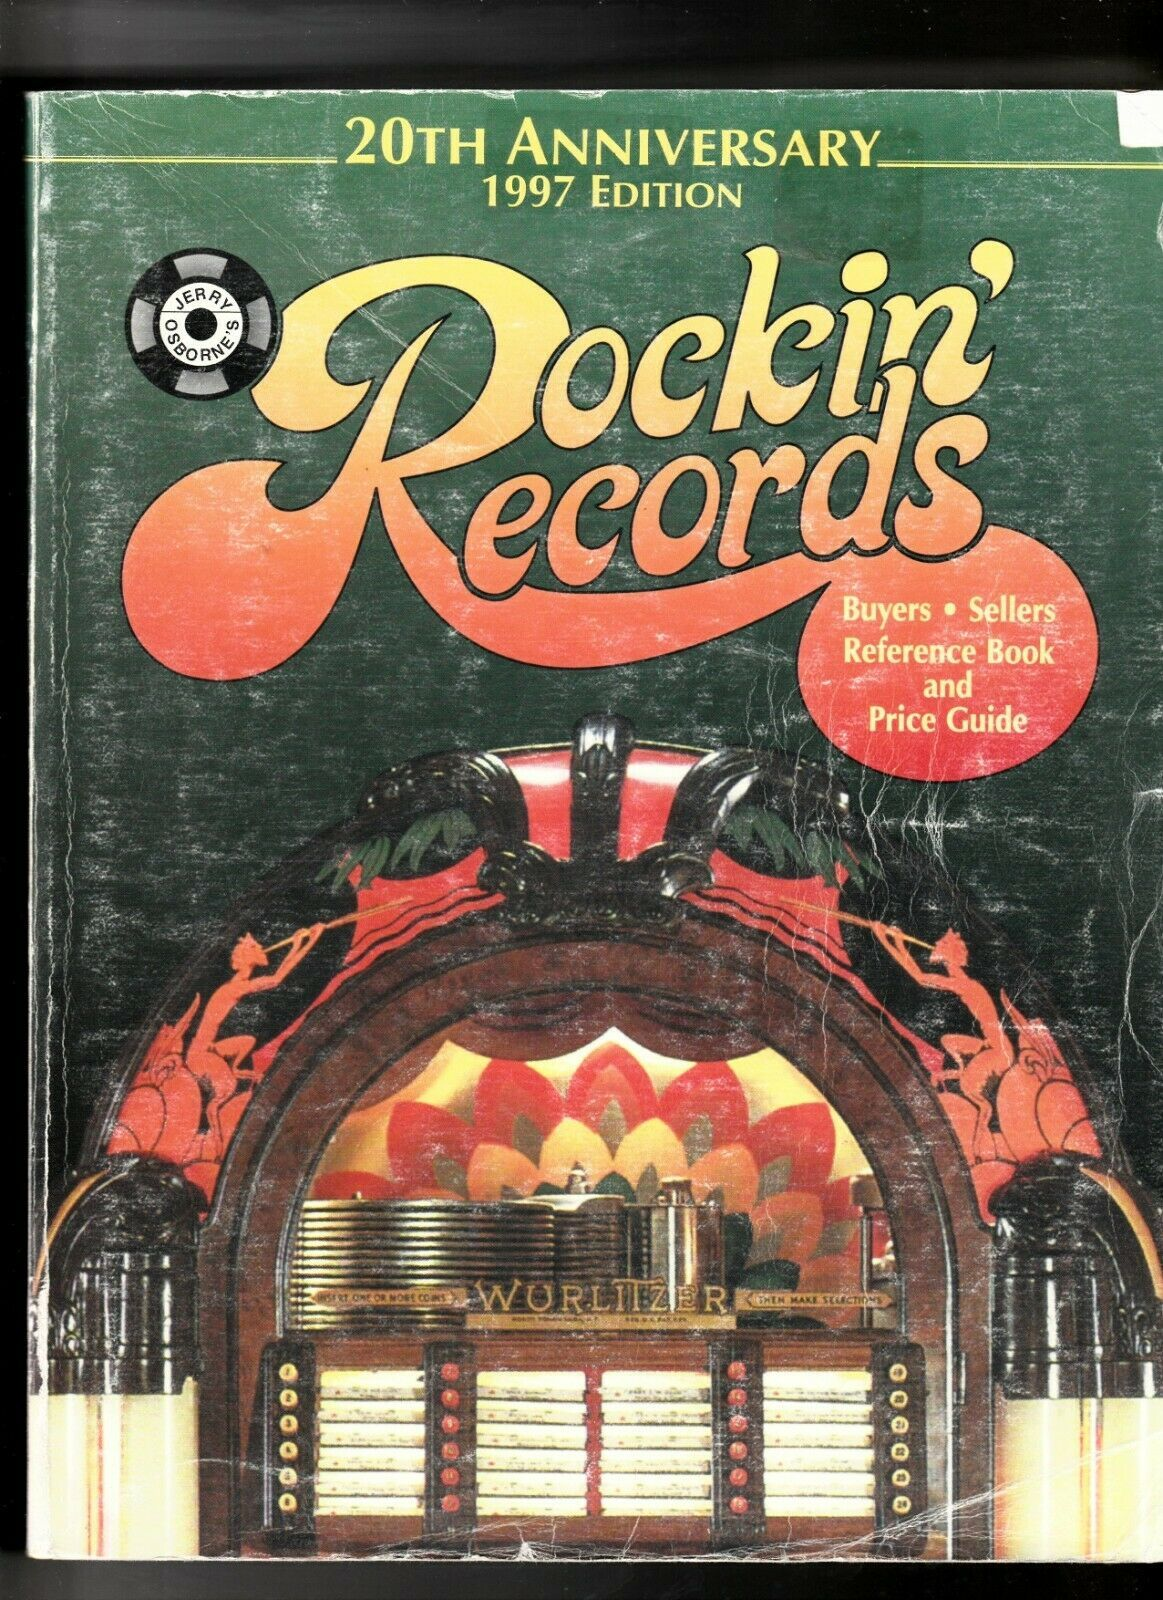 Primary image for Rockin' Records, 1997: 20th Anniversary Edition Buyers-Sellers Reference Book. b